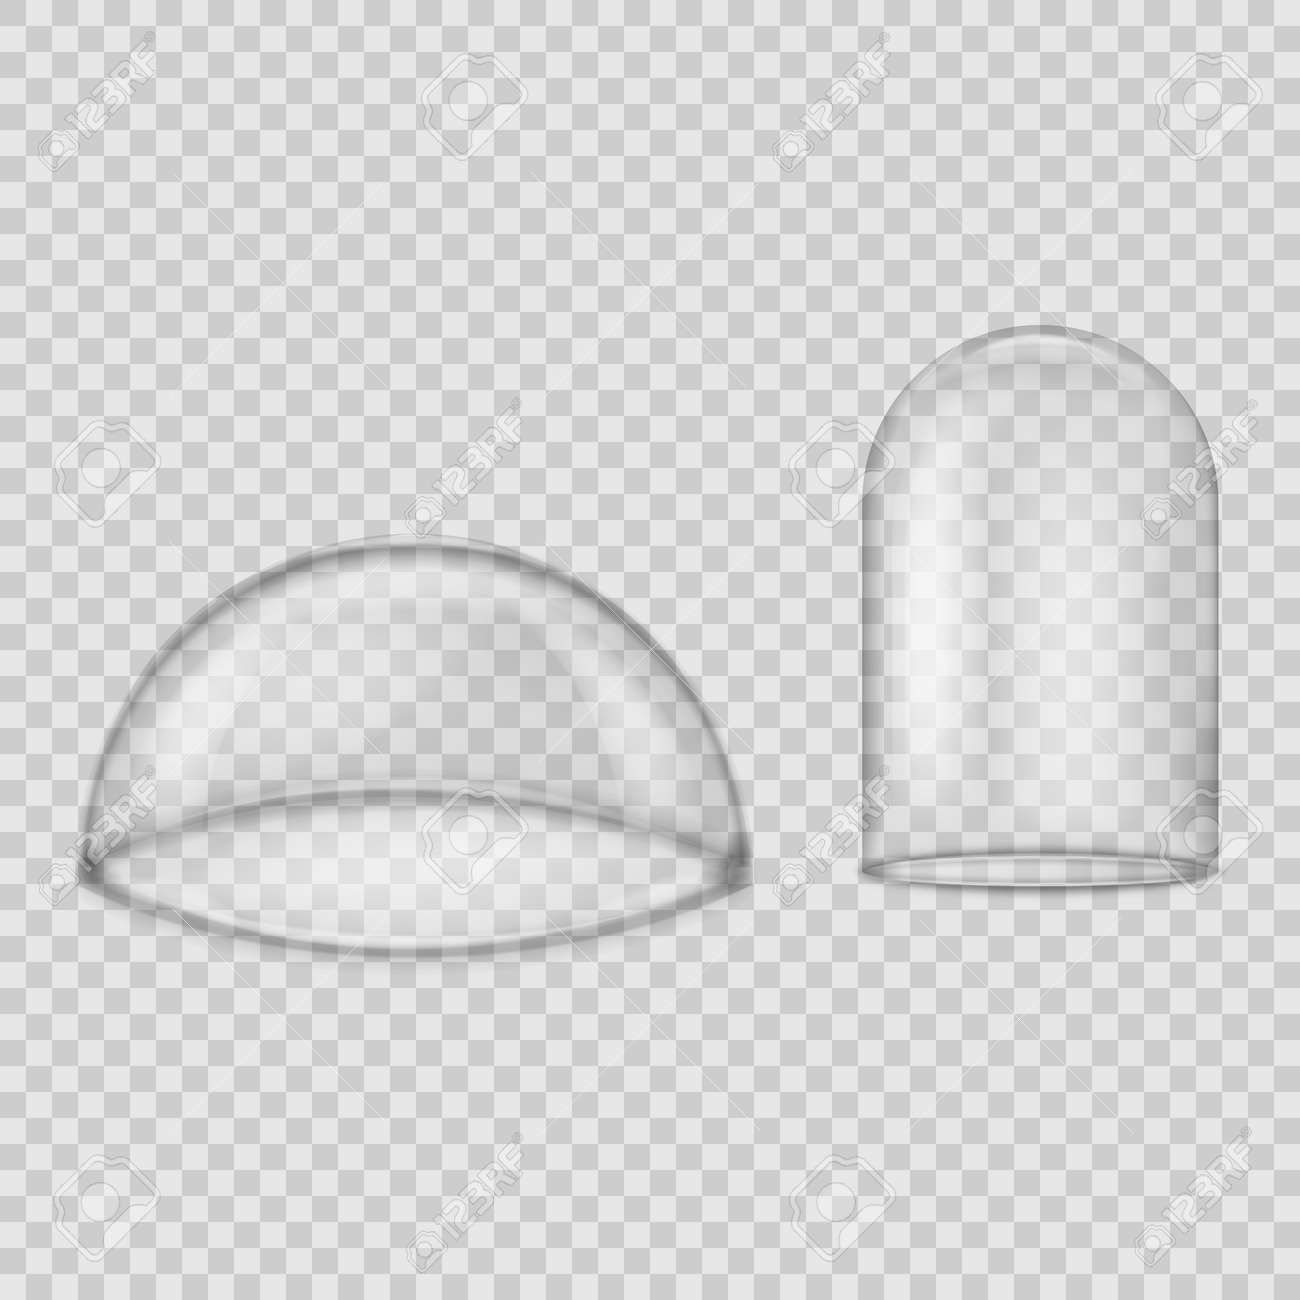 Glass dome isolated on transparent background. Vector illustration. Eps 10. - 146105483